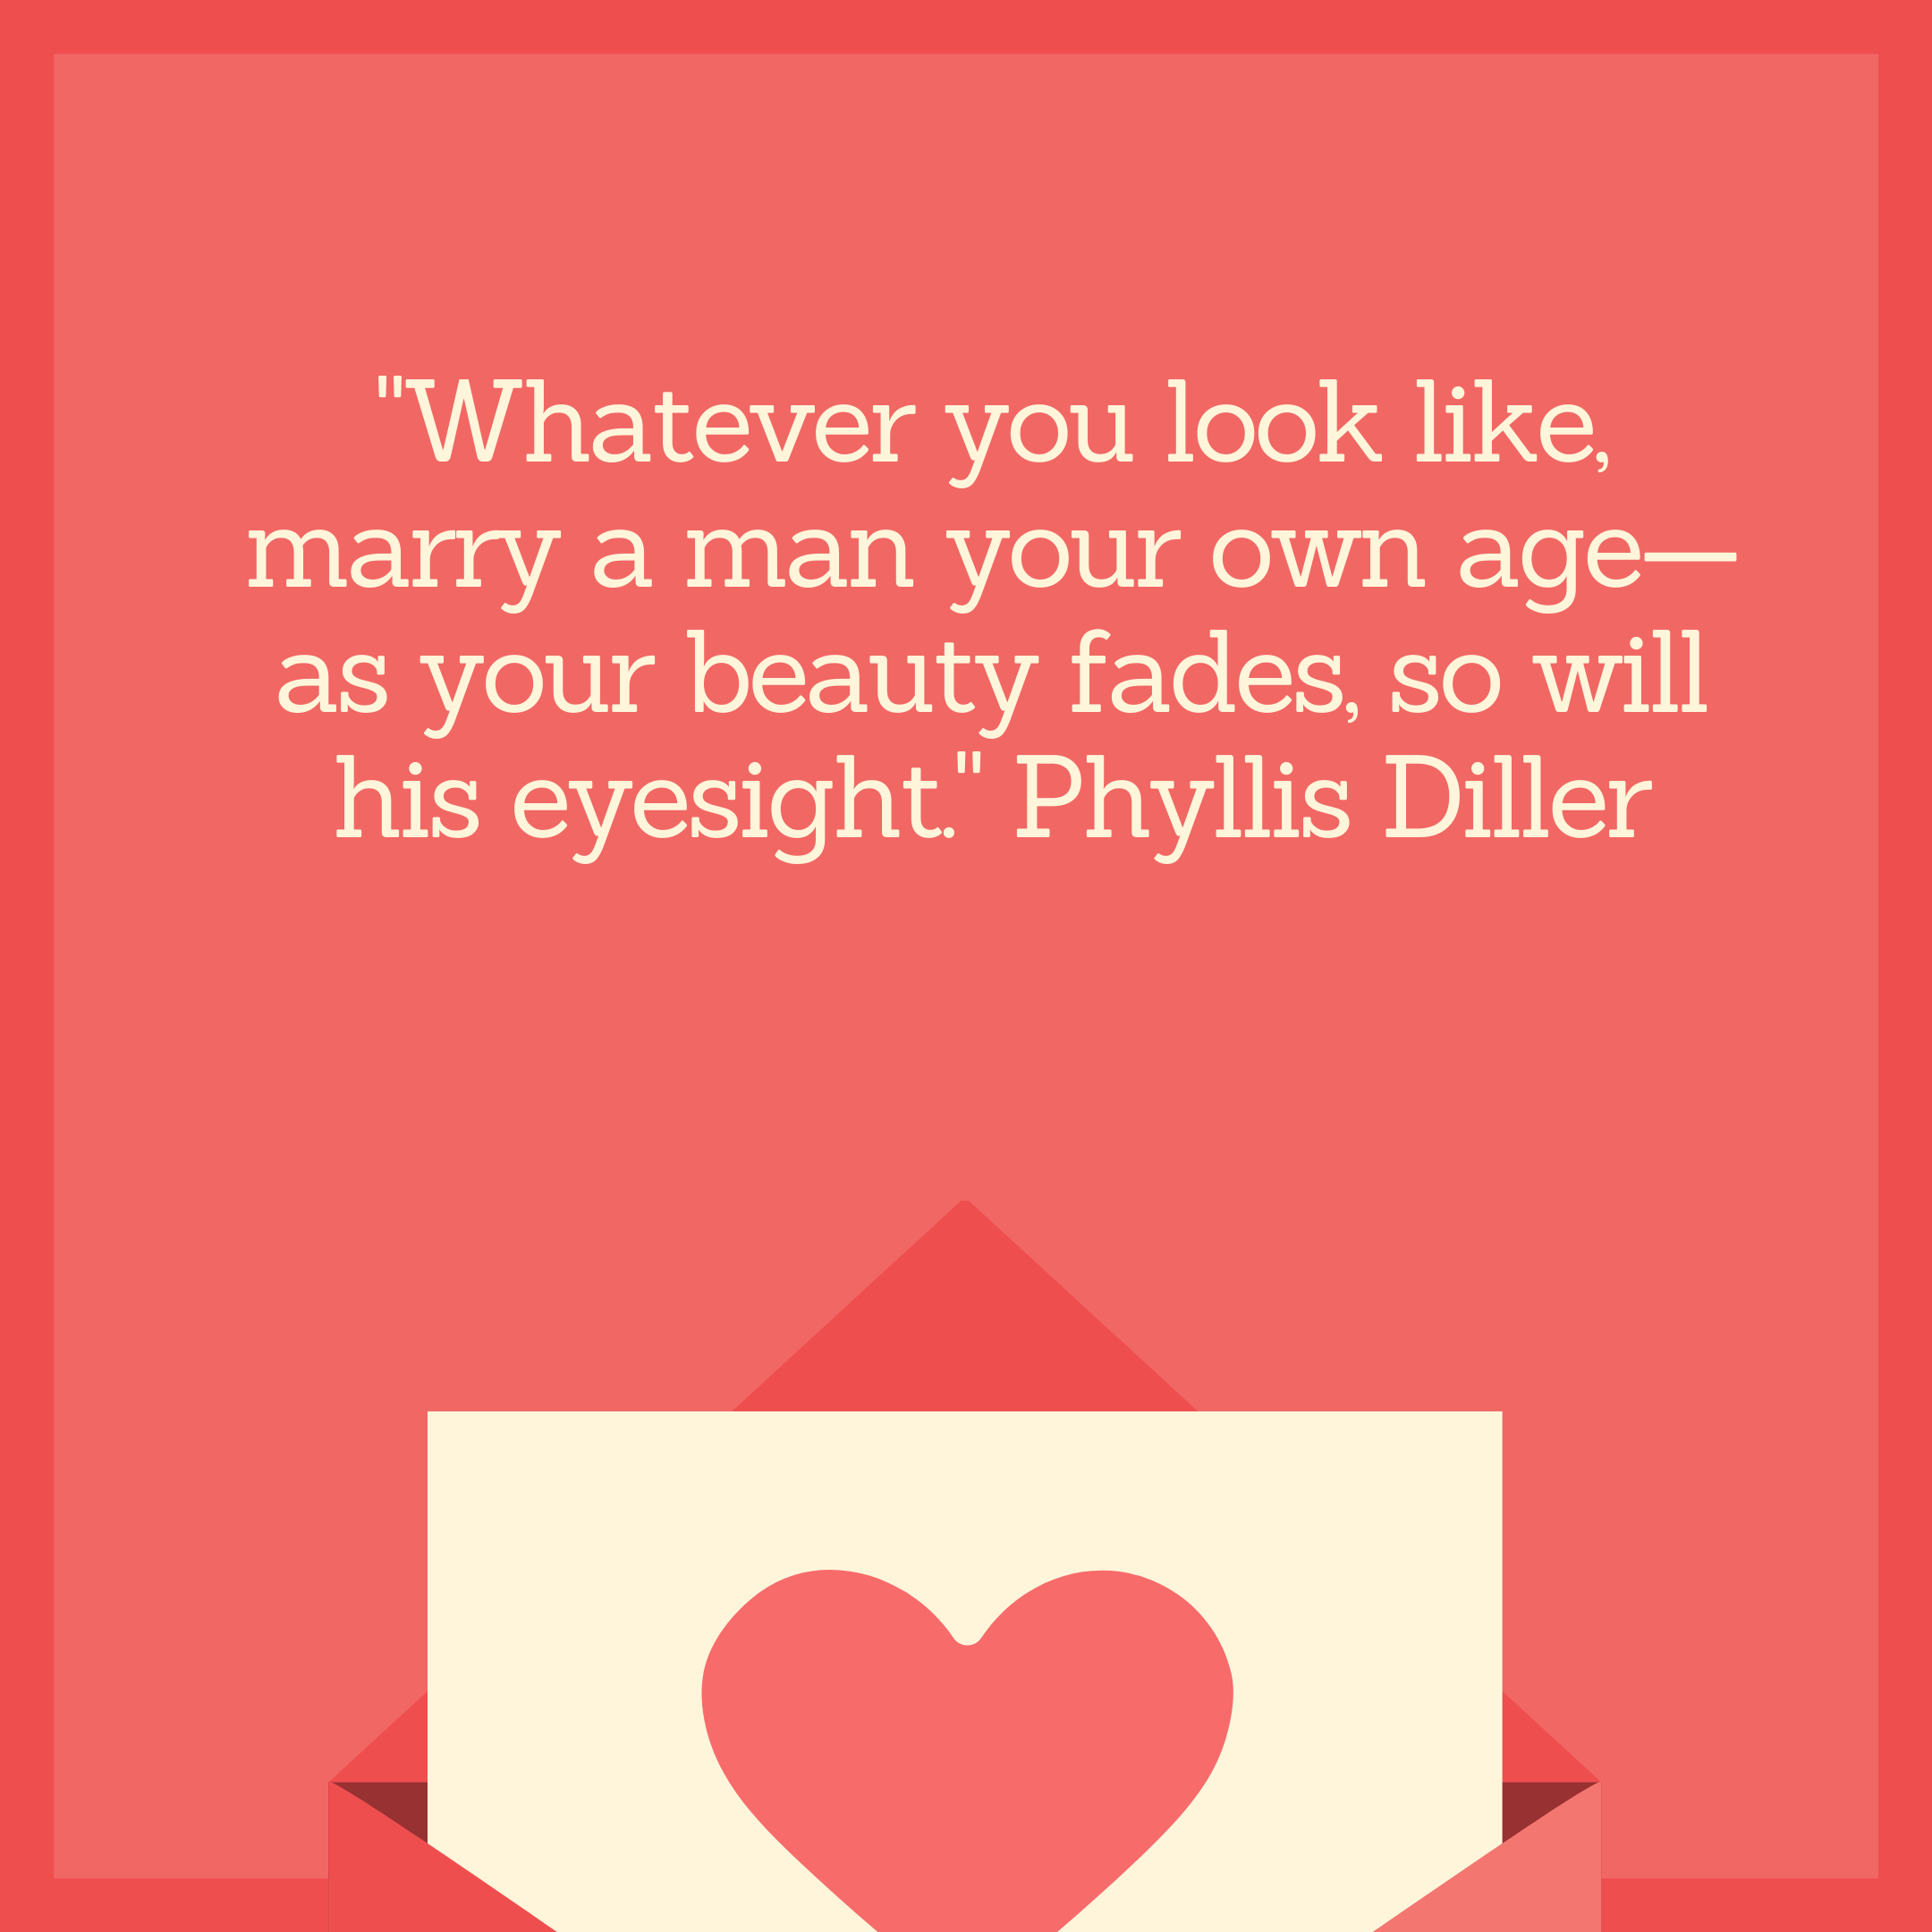 """Whatever you look like, marry a man your own age—as your beauty fades, so will his eyesight."" Phyllis Diller"